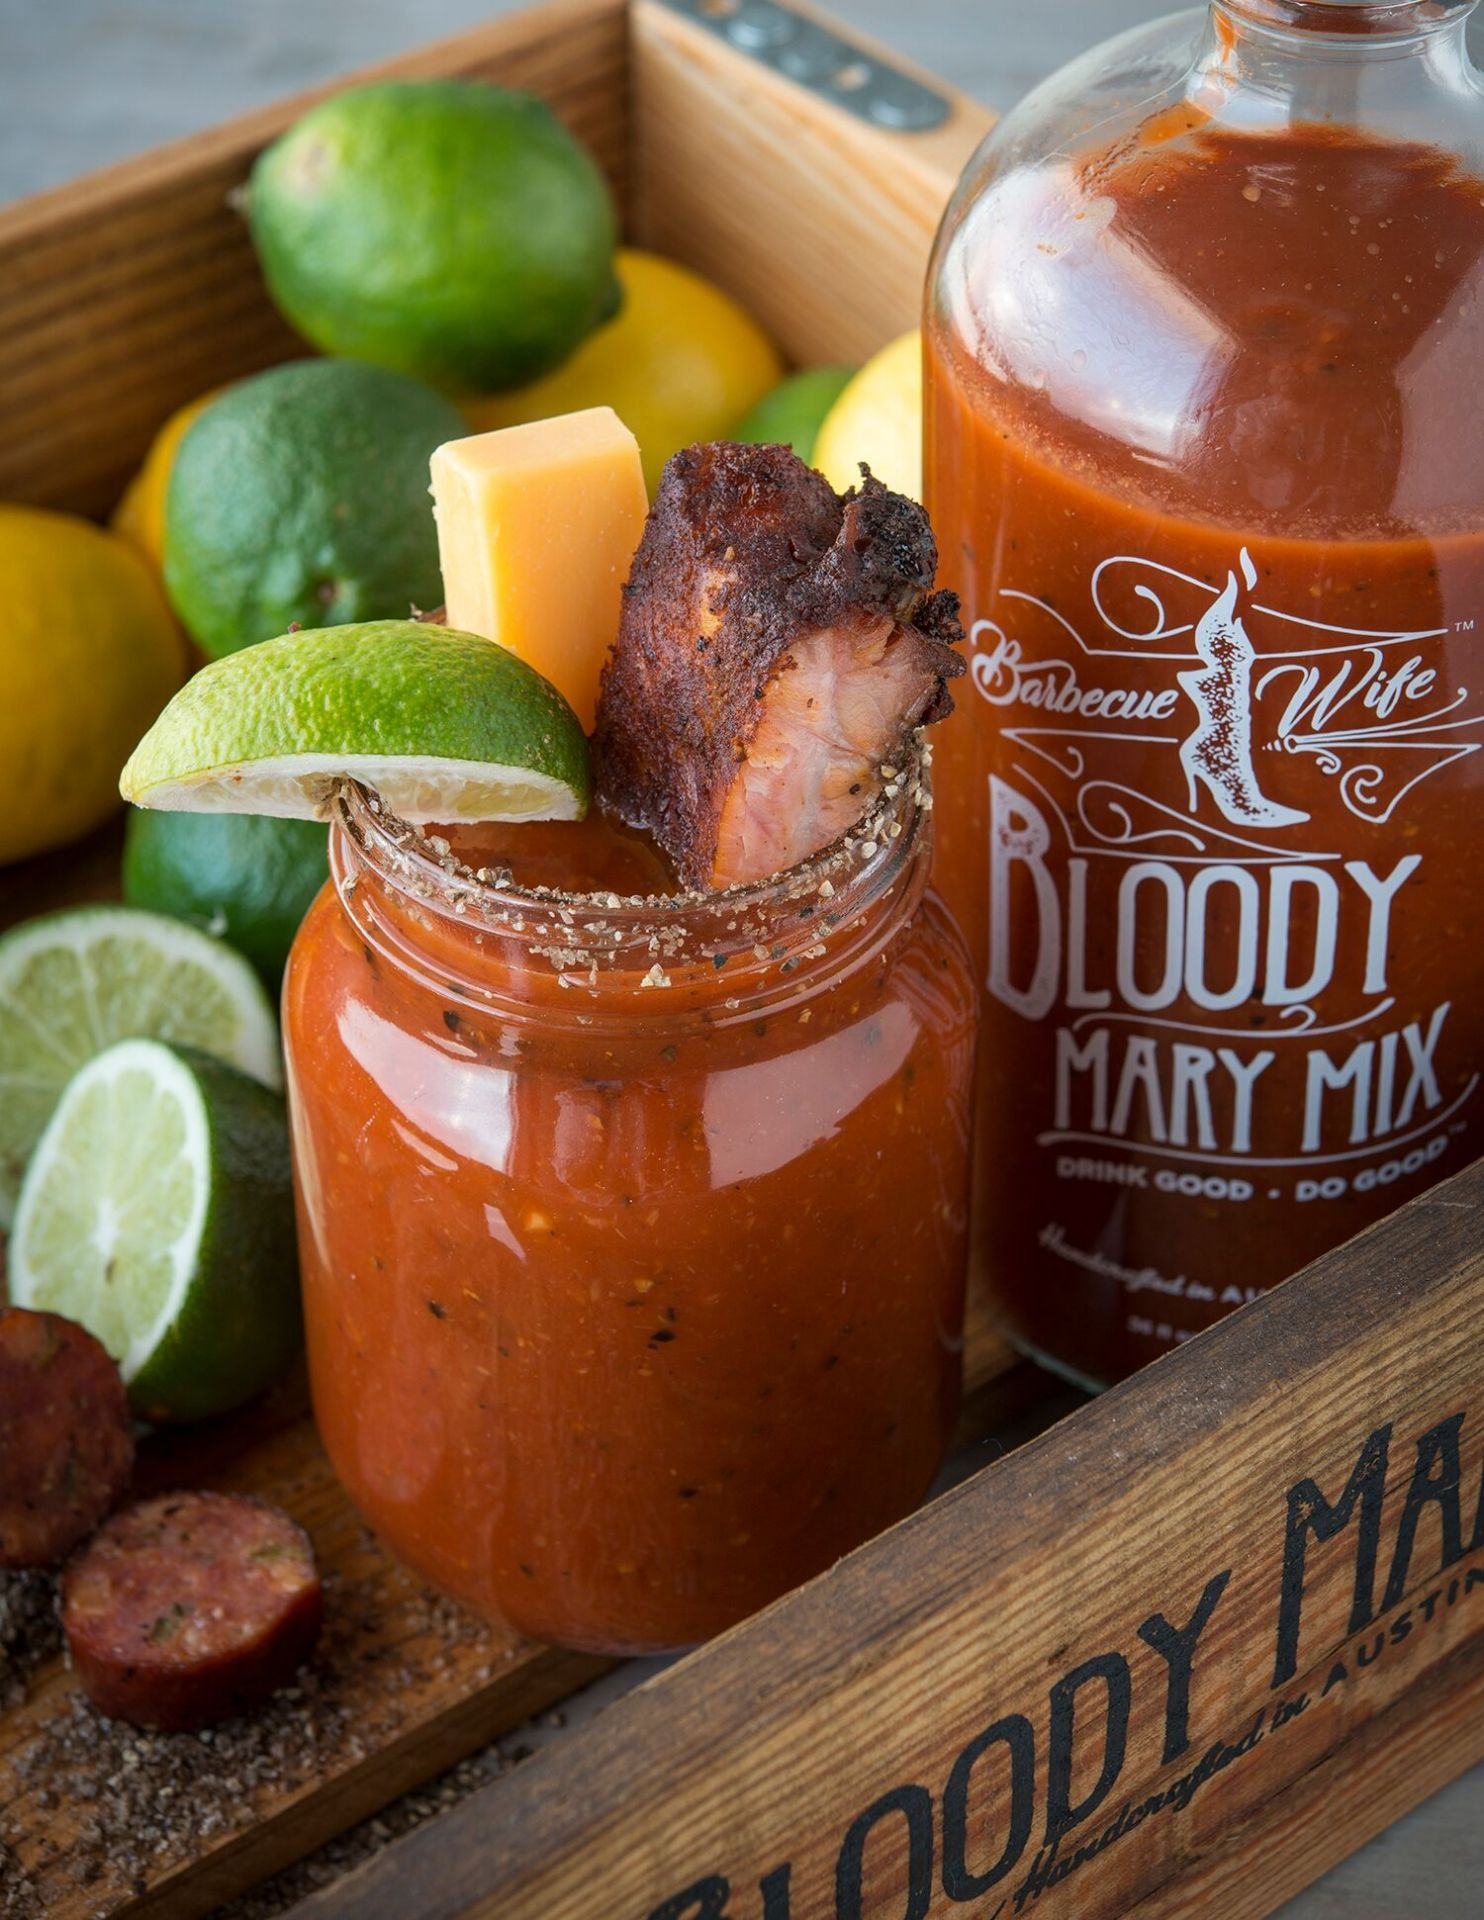 barbecue wife bloody mary mix